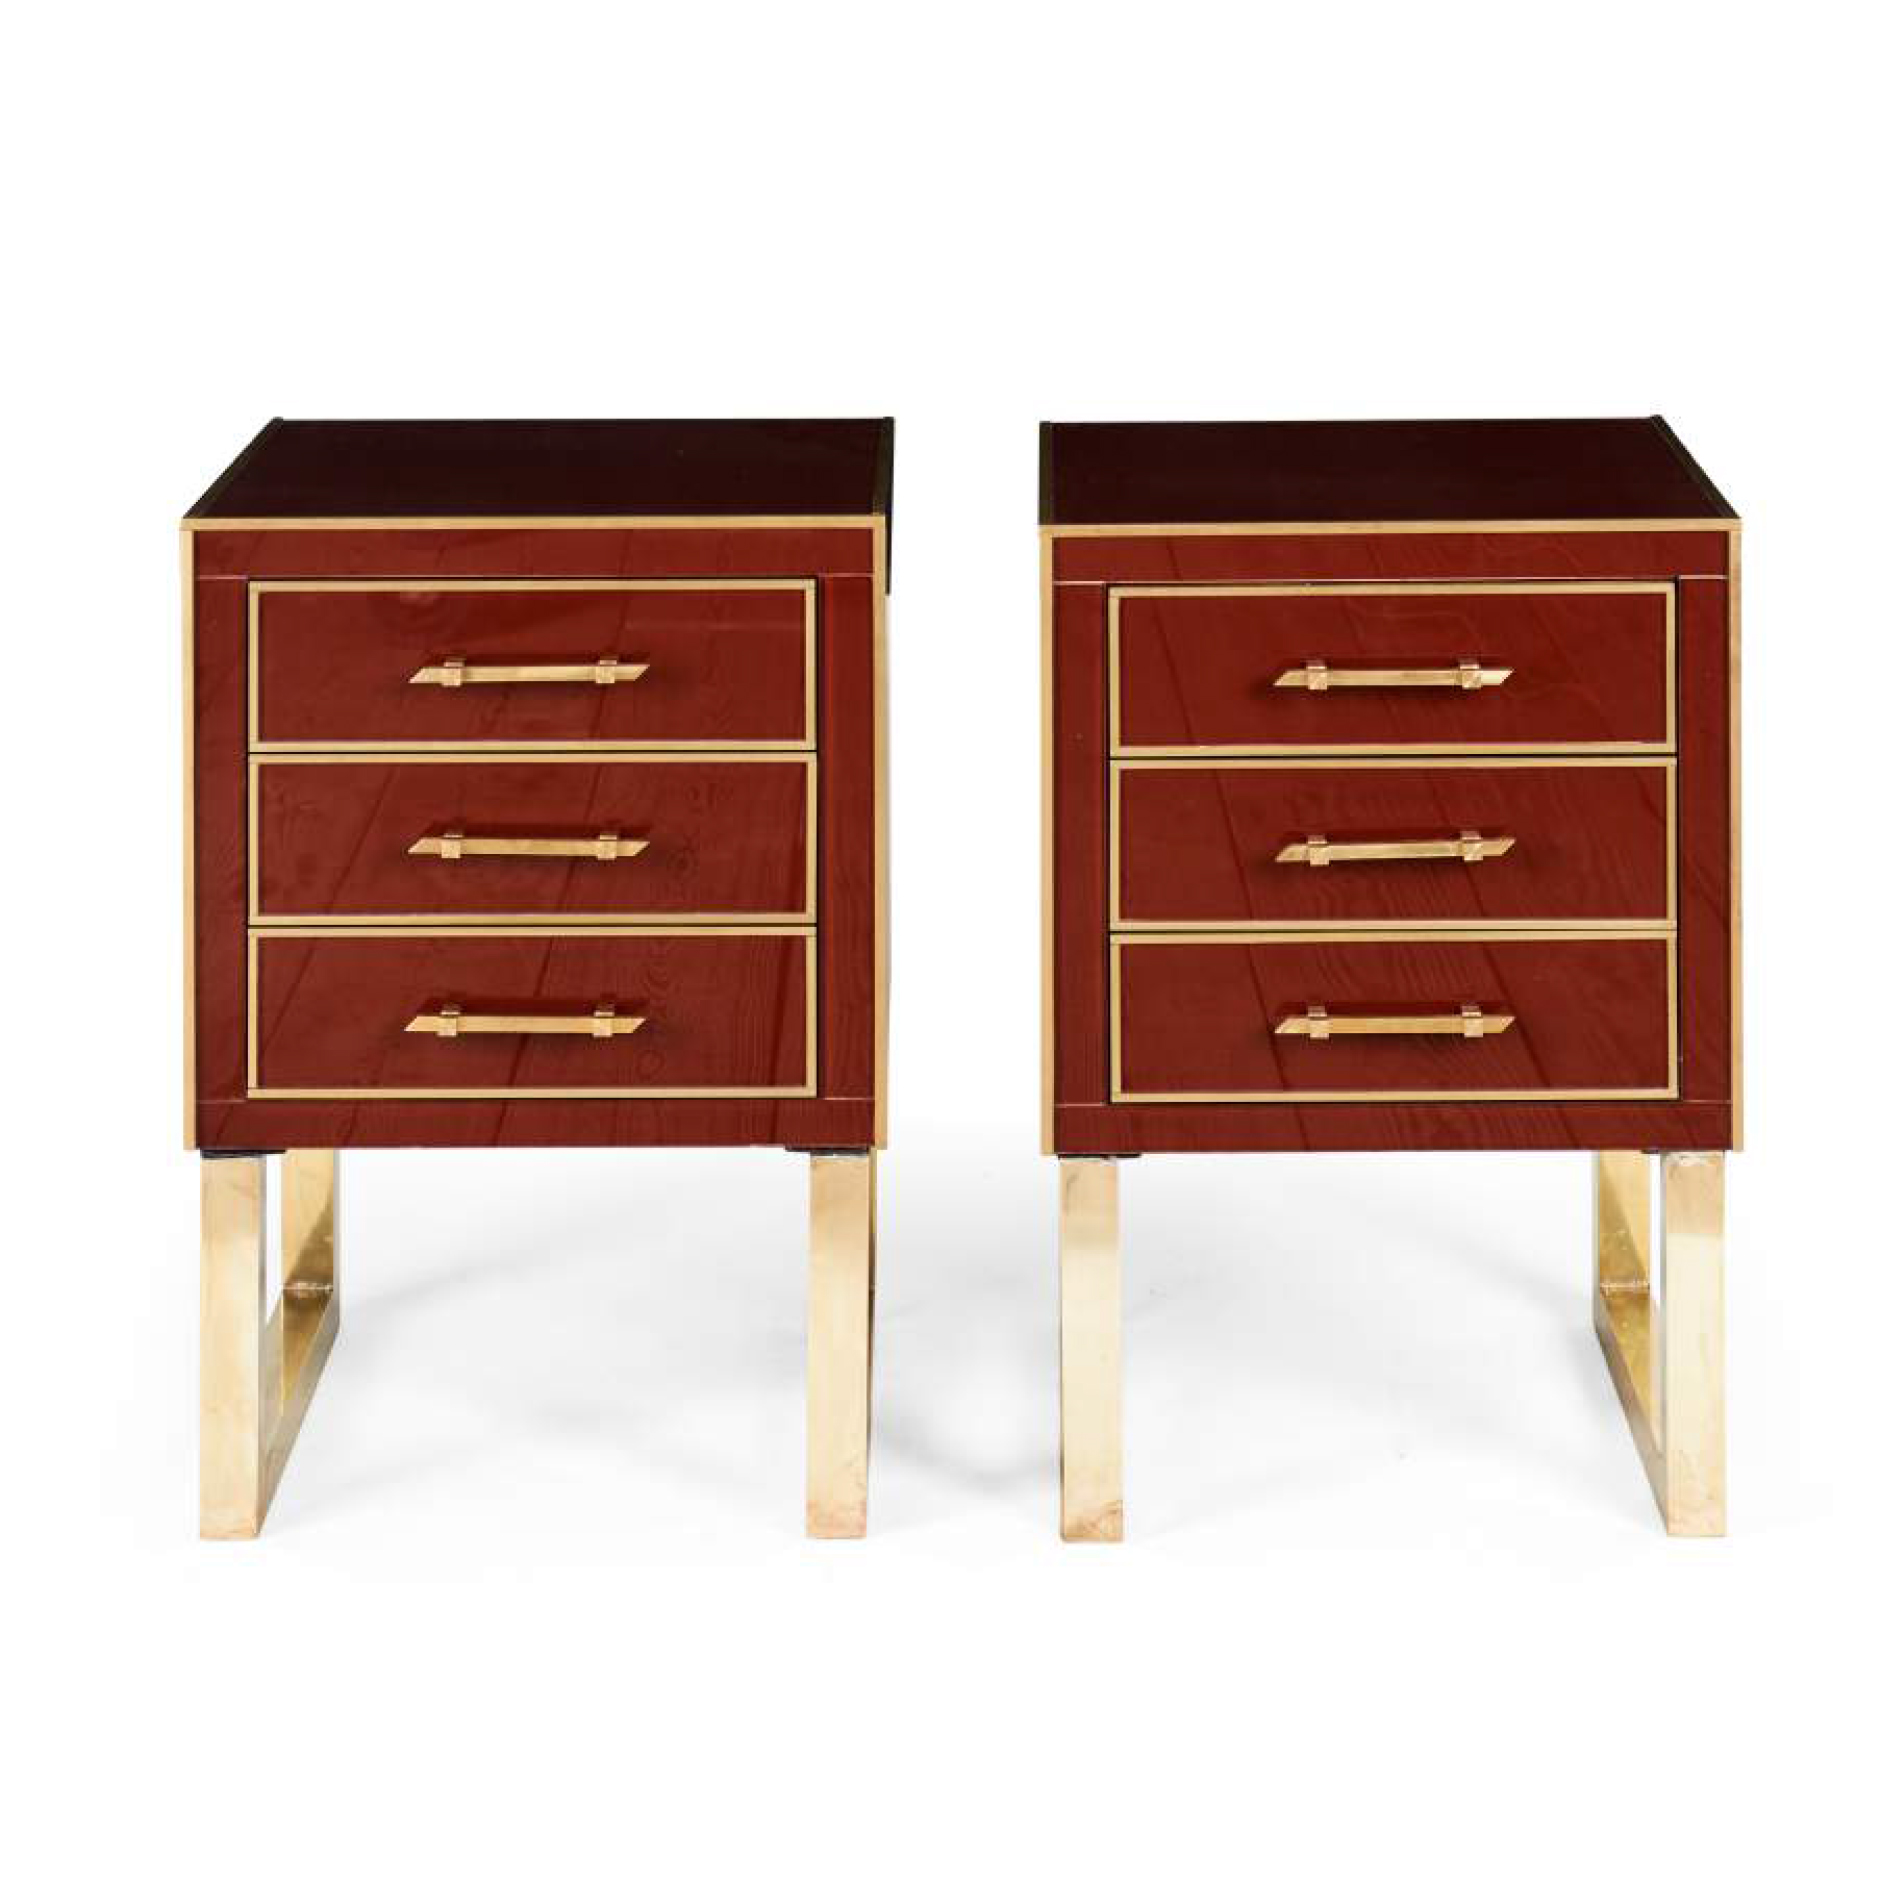 Pair of Buoi Chest of Drawers